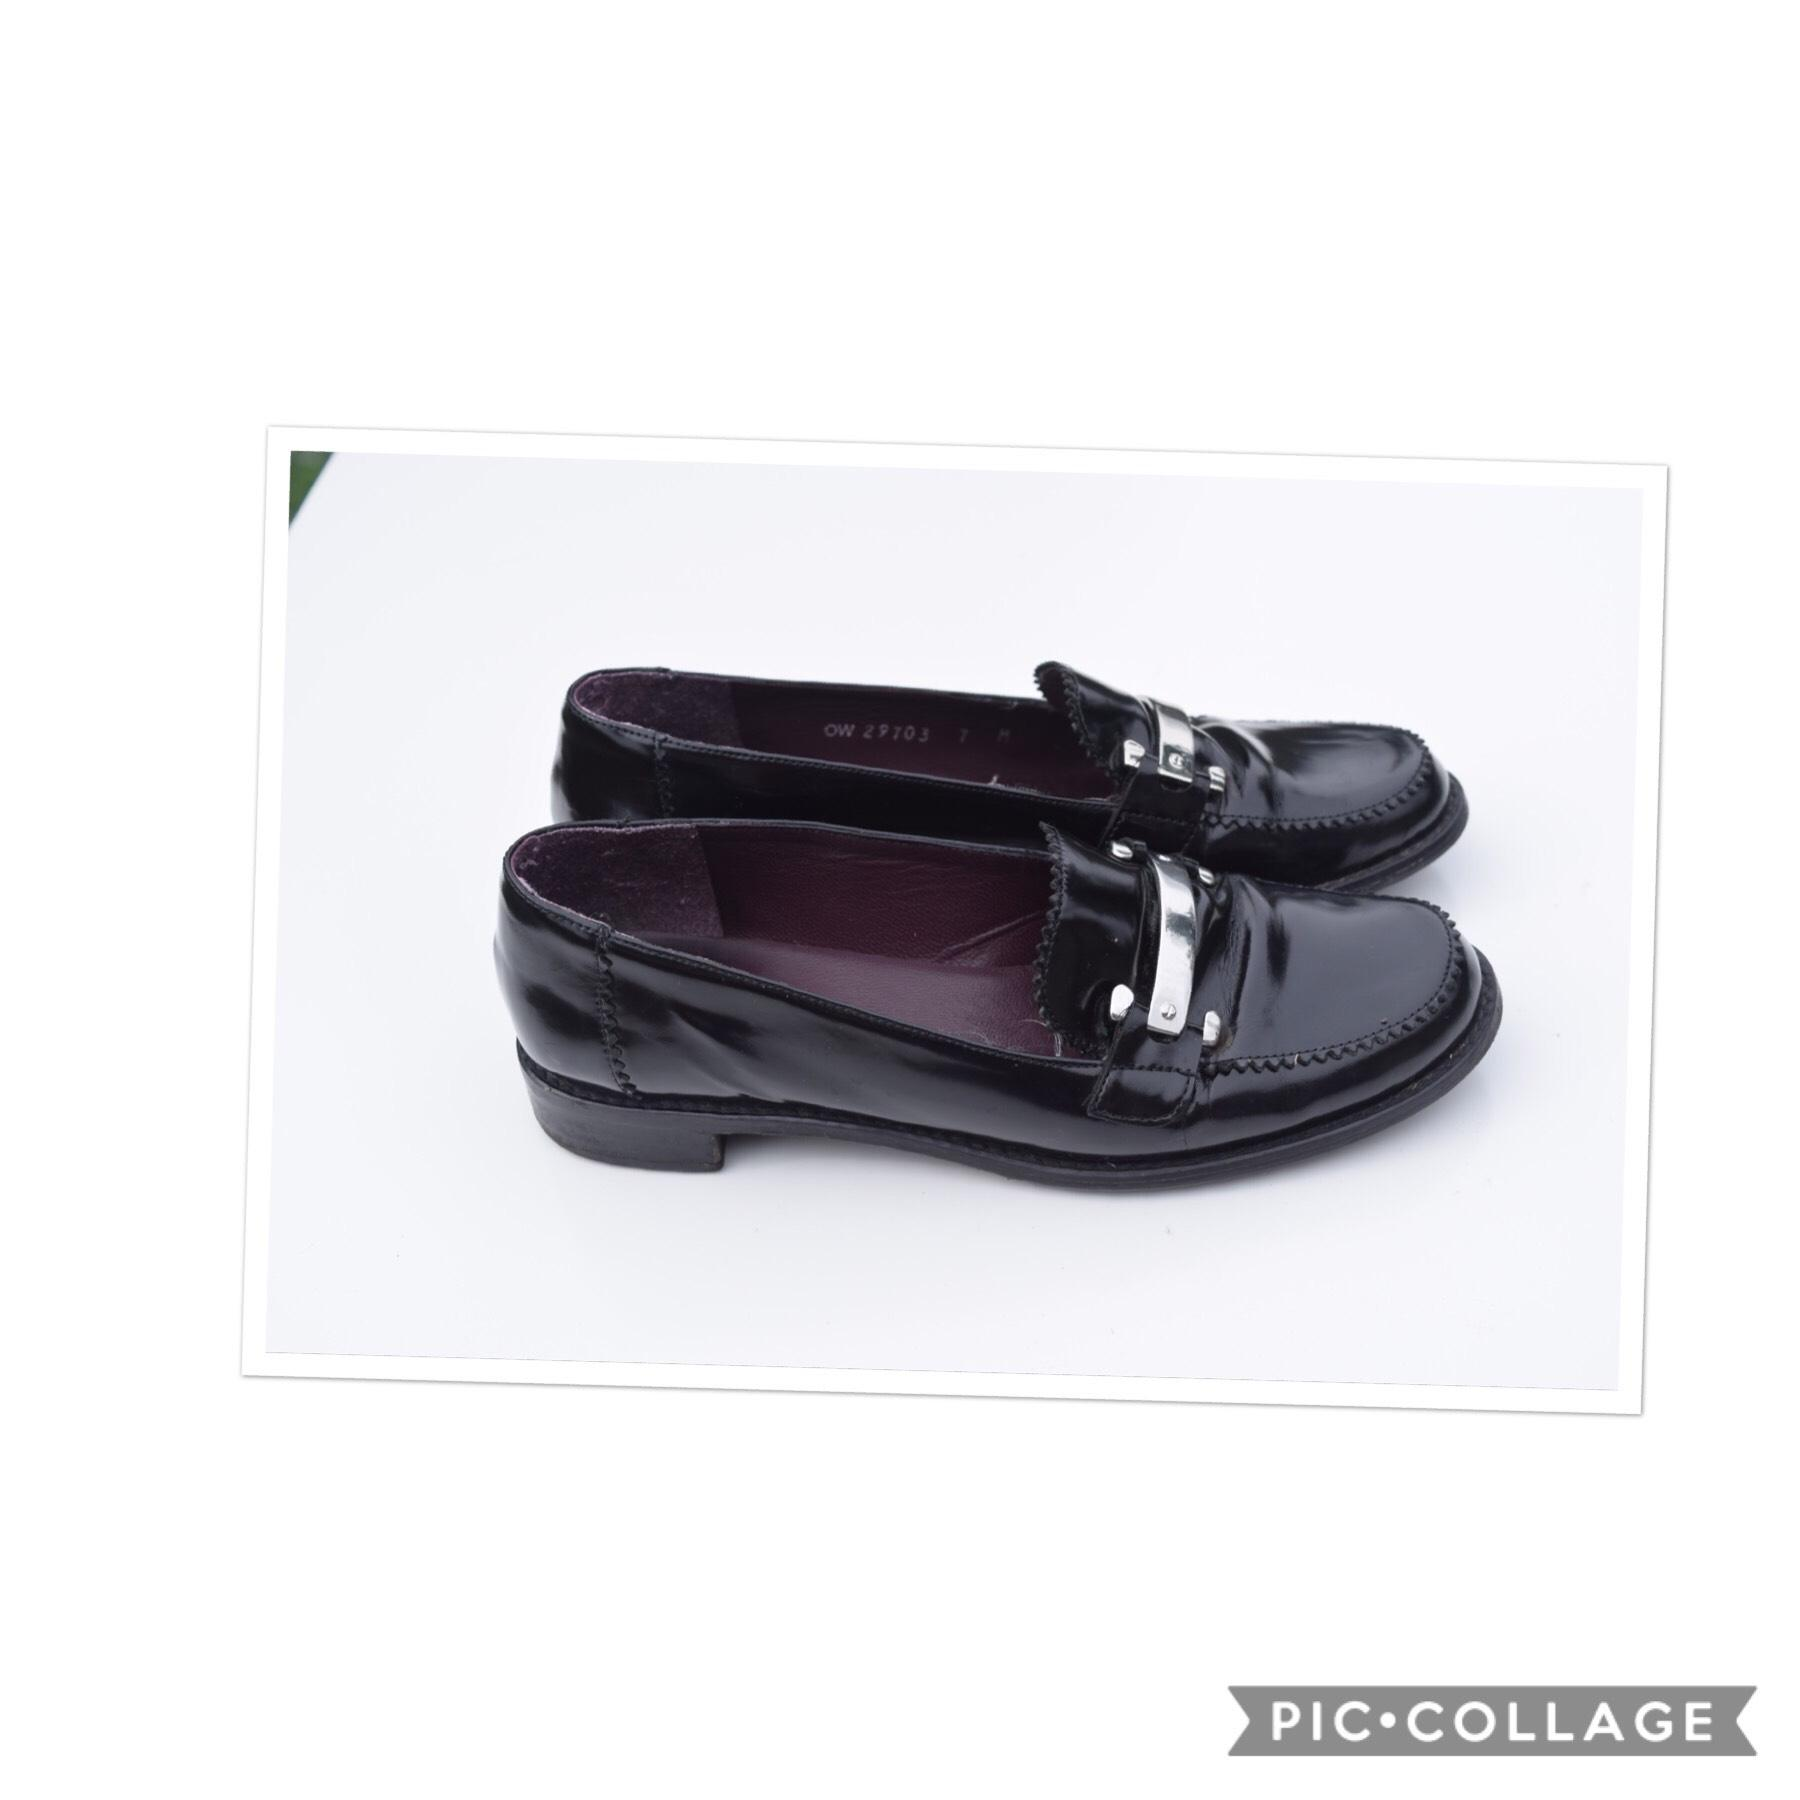 Stuart Weitzman Black Patent Loafers Flats Size US 7 Regular (M, B)